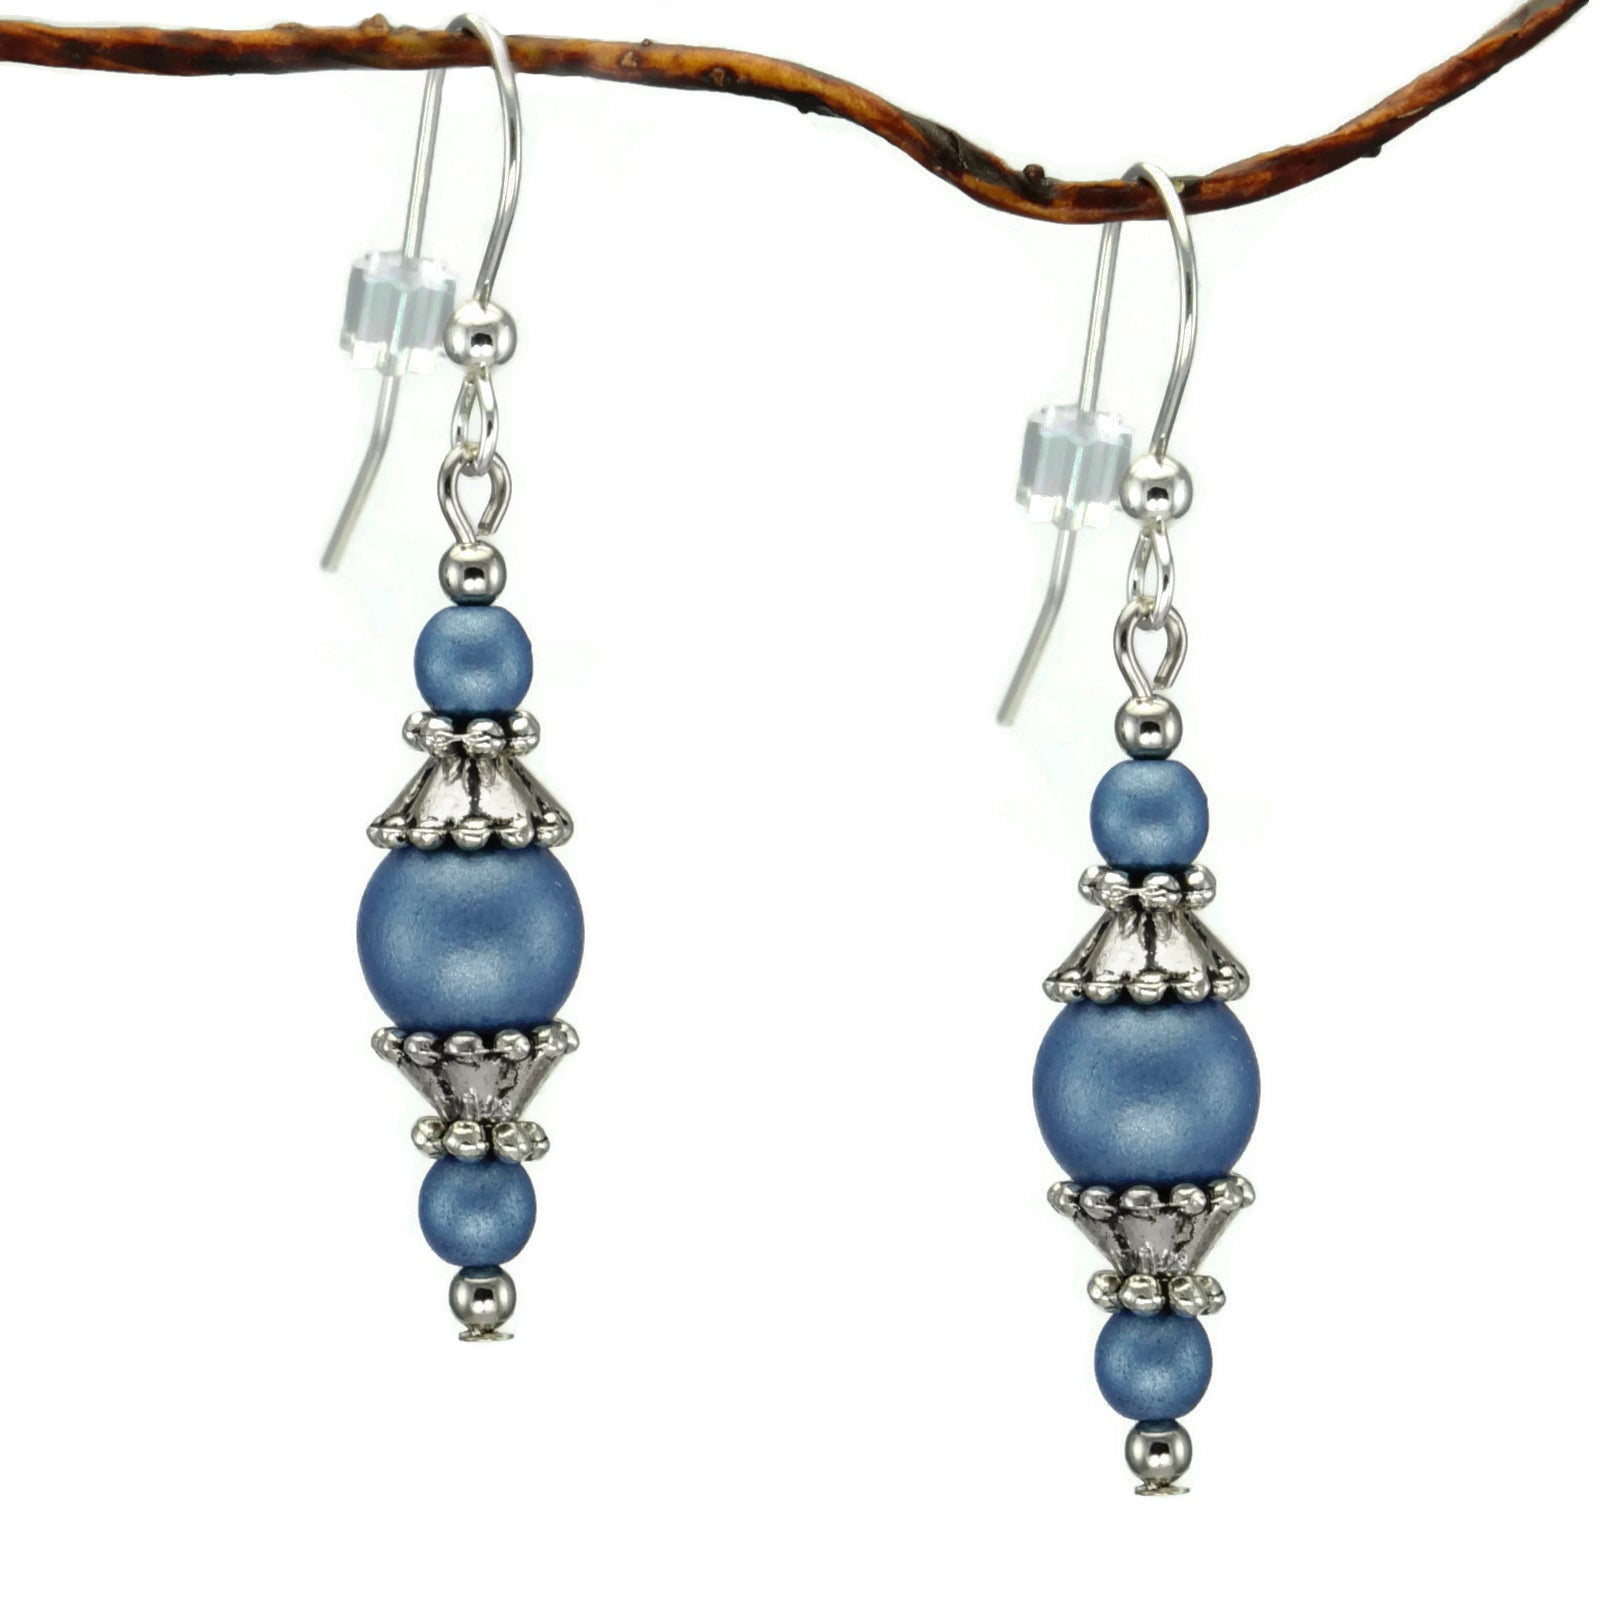 web earrings made blue marie glass j s ssg sea lisa maine in product er long